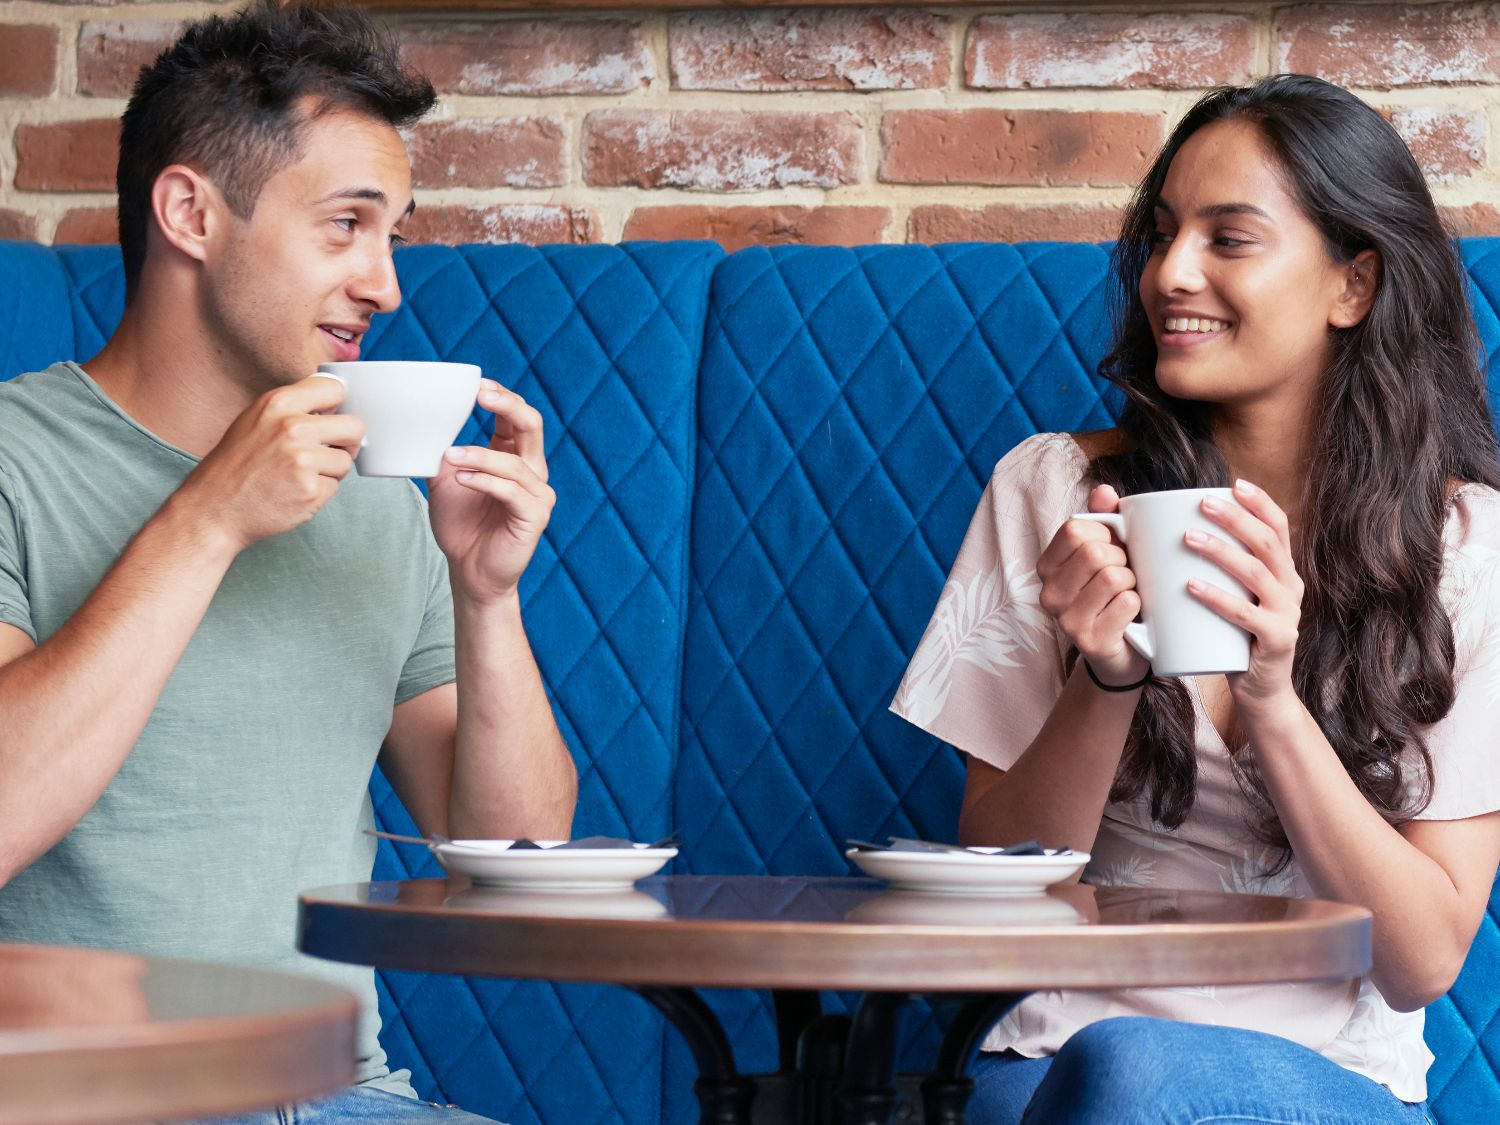 7 Conversation Starters for Dating to Avoid Awkwardness